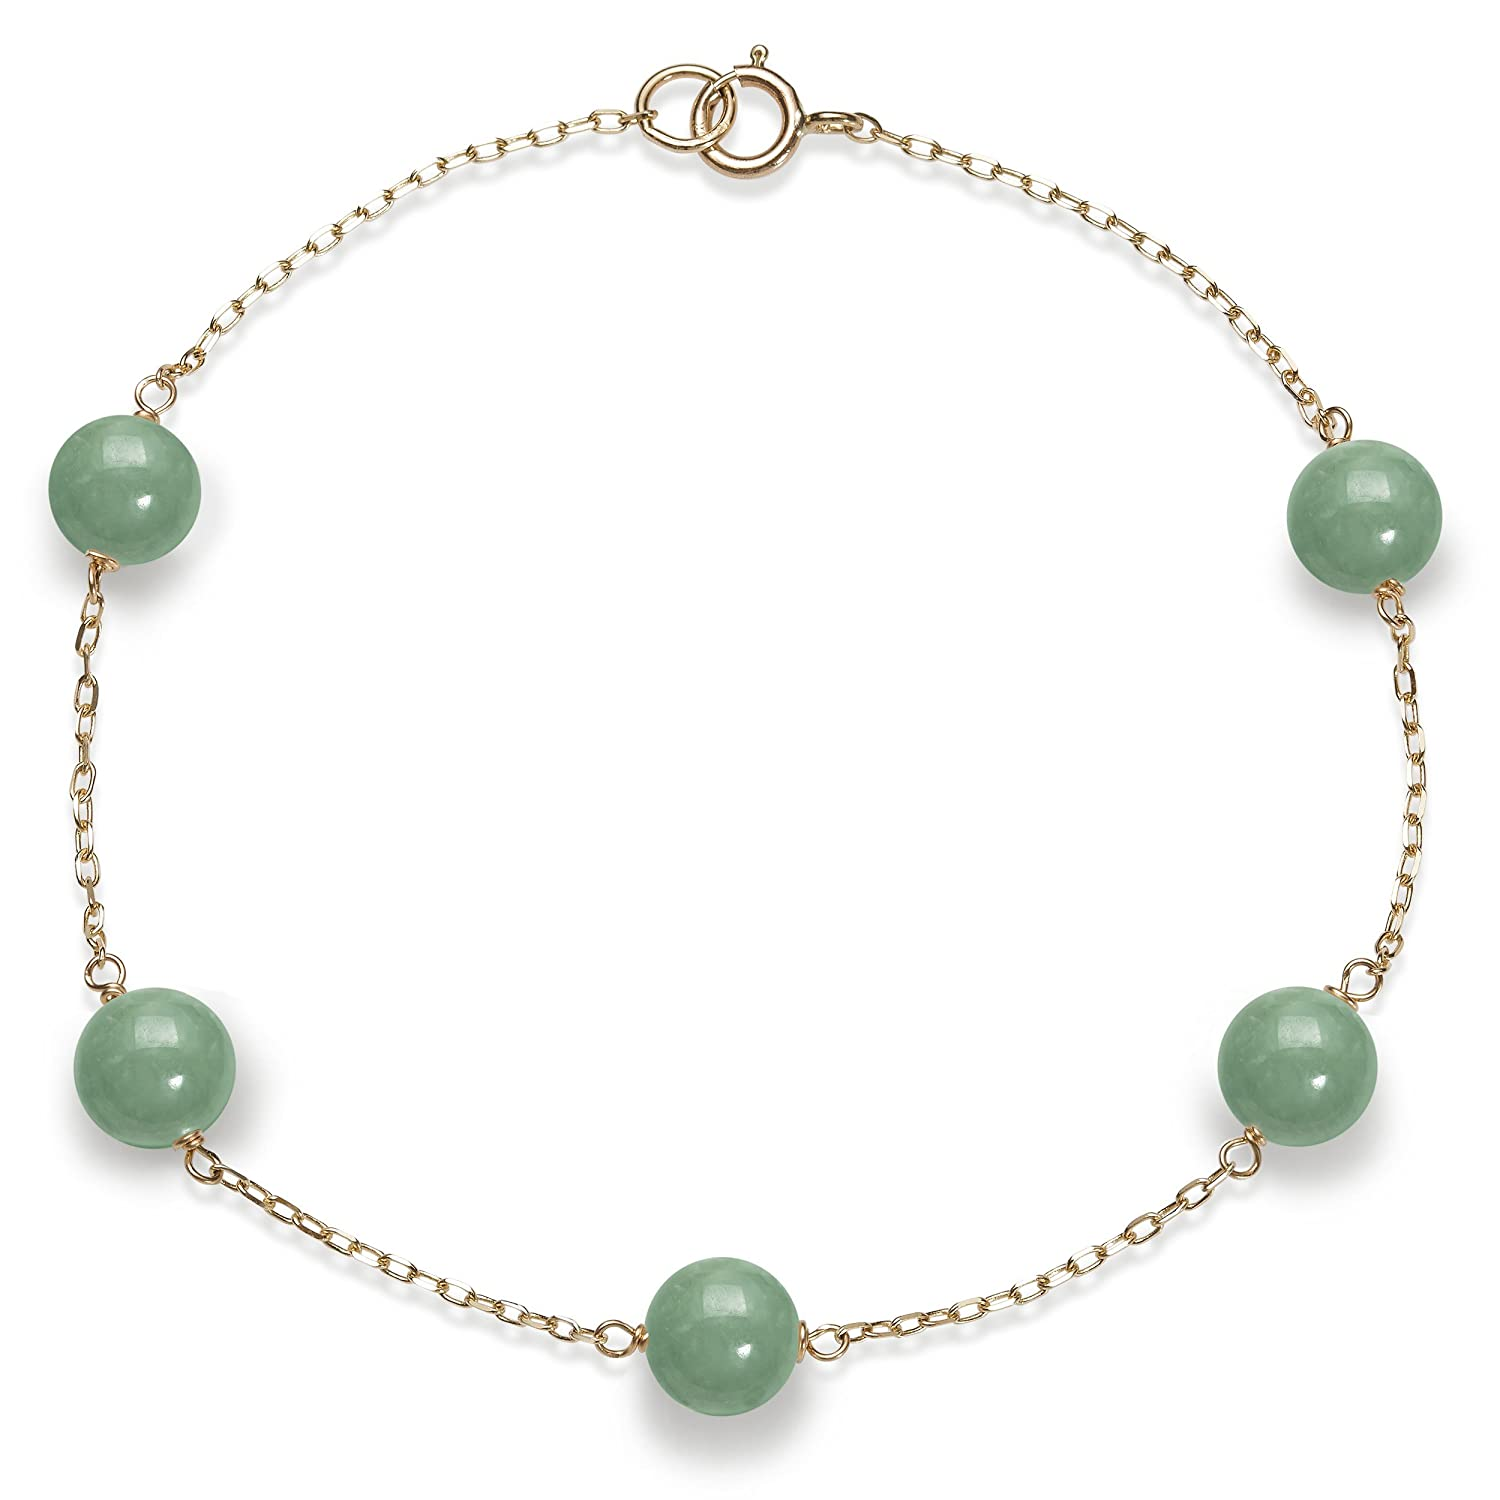 10k Yellow Gold 6mm Green Jade Station Chain Tin Cup Bracelet, 7.5 7.5 Belacqua B-962Y10-AM